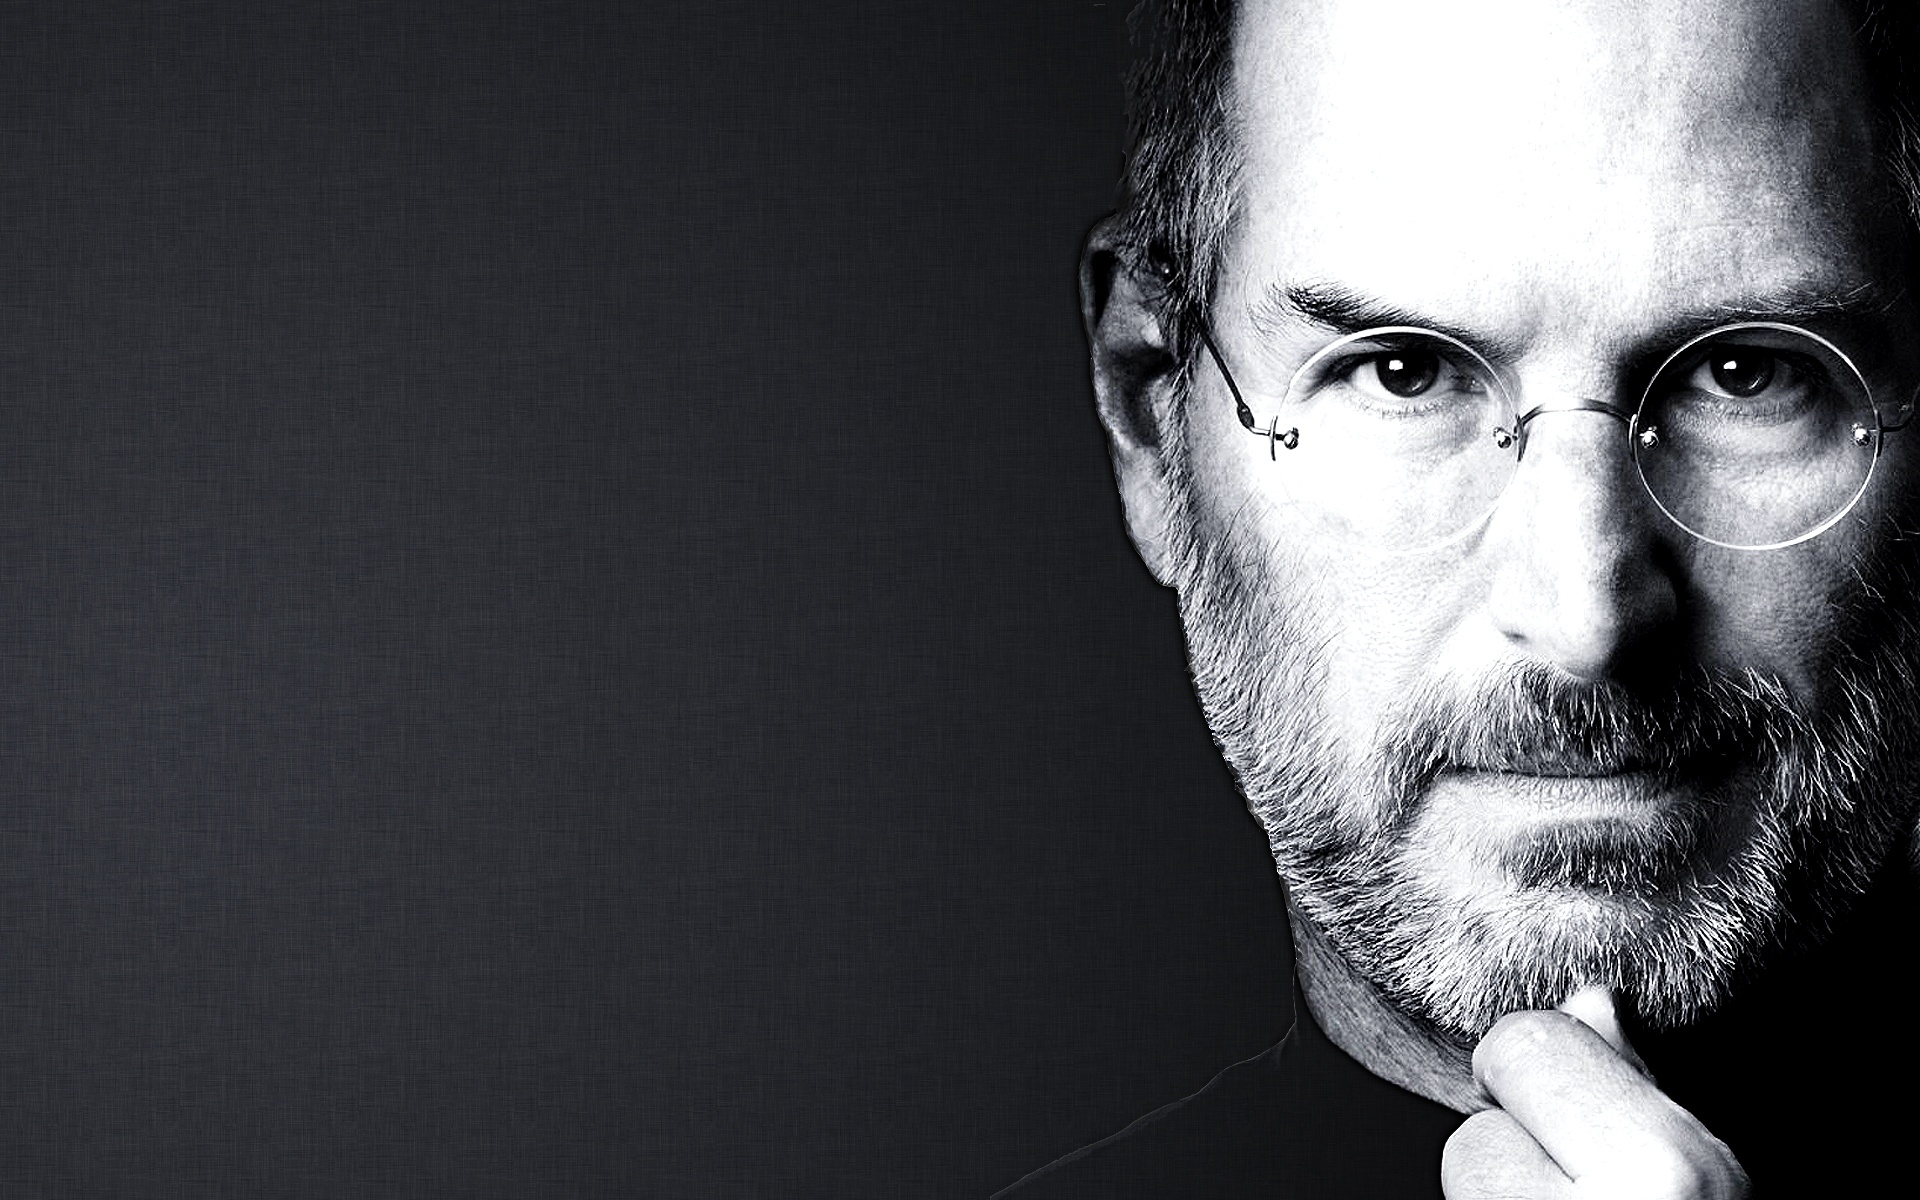 Steve-Jobs-Wallpaper-6